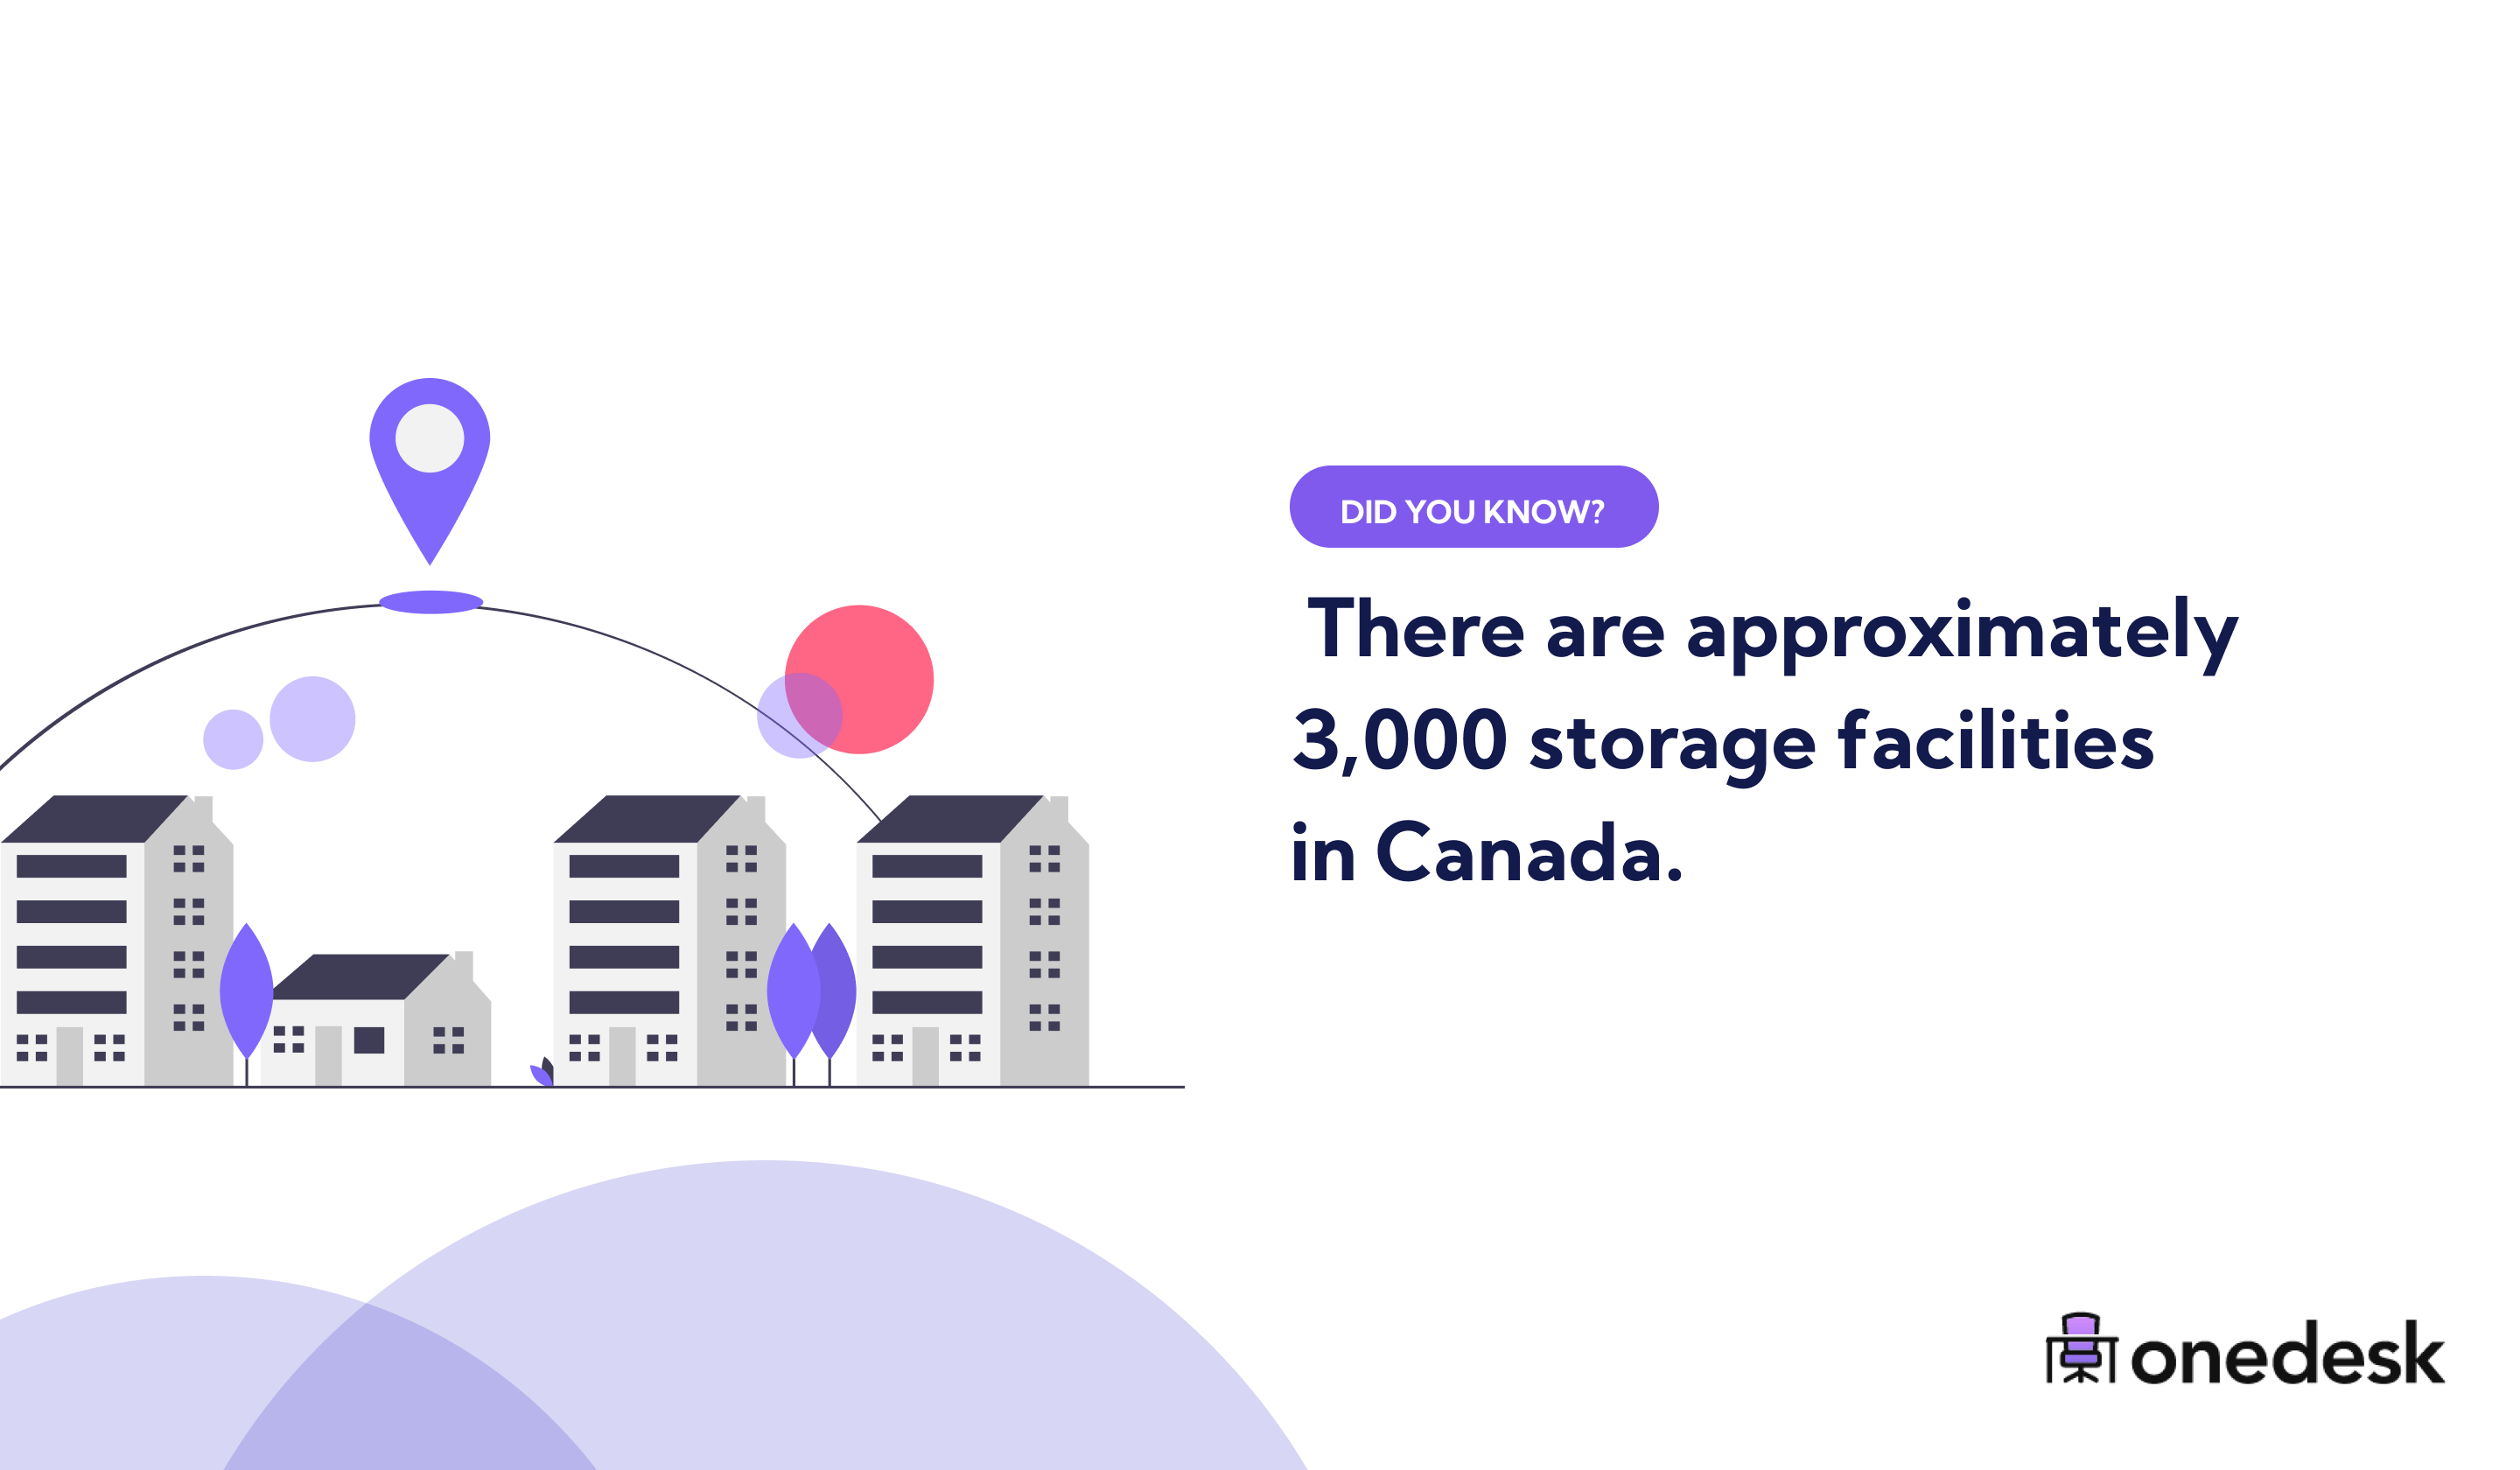 amount of storage facilities in Canada